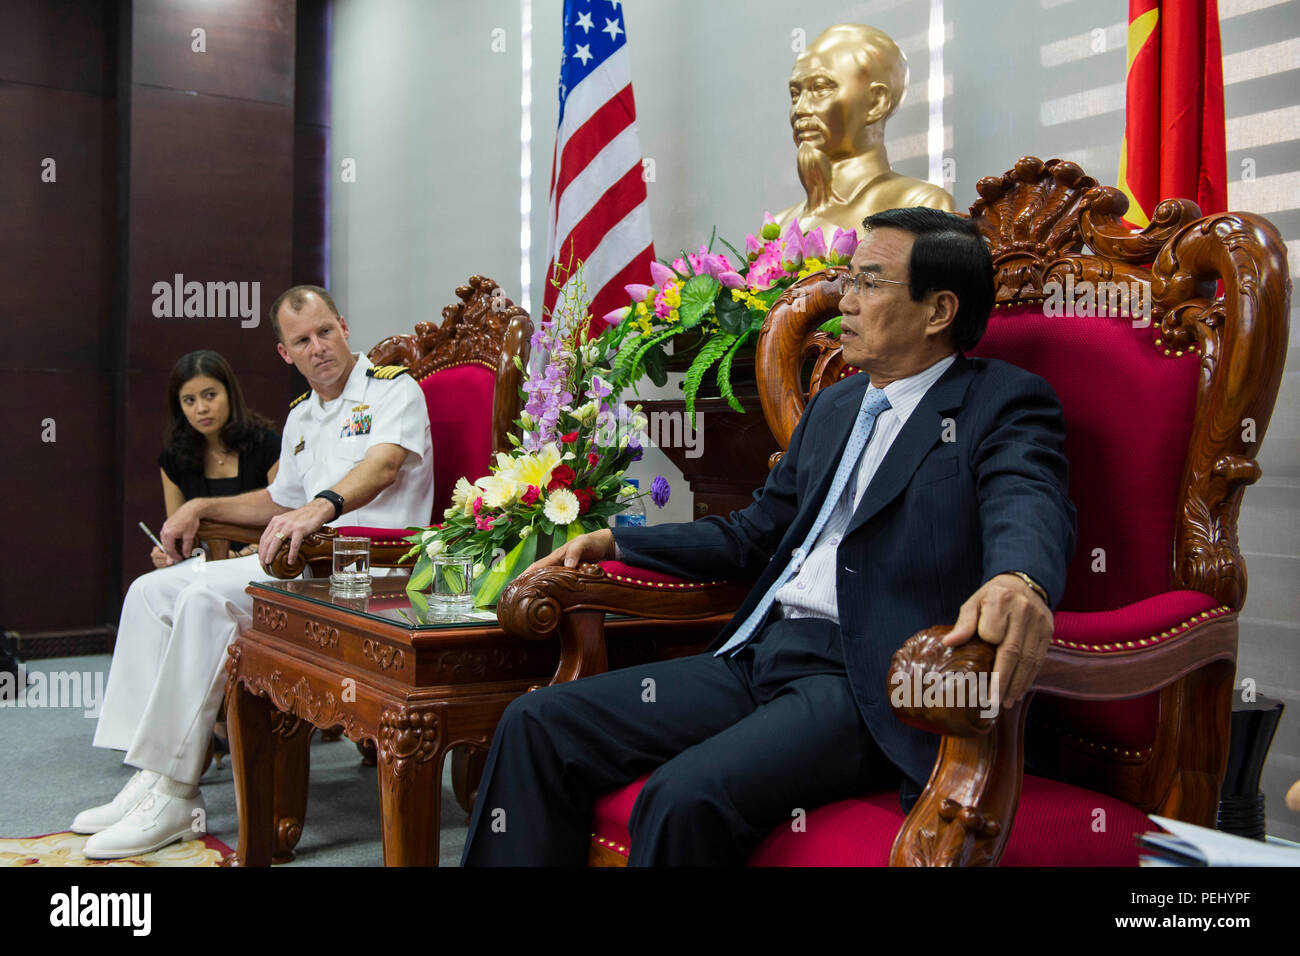 DA NANG, Vietnam (Aug. 17, 2015) Capt. Christopher Engdahl (left), the Pacific Partnership 2015 mission commander, and Dai ta Vu Ding Hieu, the vice chairman of the People's Committee of Da Nang, discuss goals for the Pacific Partnership mission at the Da Nang Administrative Center. The hospital ship USNS Mercy (T-AH 19) is currently in Vietnam for its fourth mission port of PP15. Pacific Partnership is in its 10th iteration and is the largest annual multilateral humanitarian assistance and disaster relief preparedness mission conducted in the Indo-Asia-Pacific region. While training for crisi - Stock Image